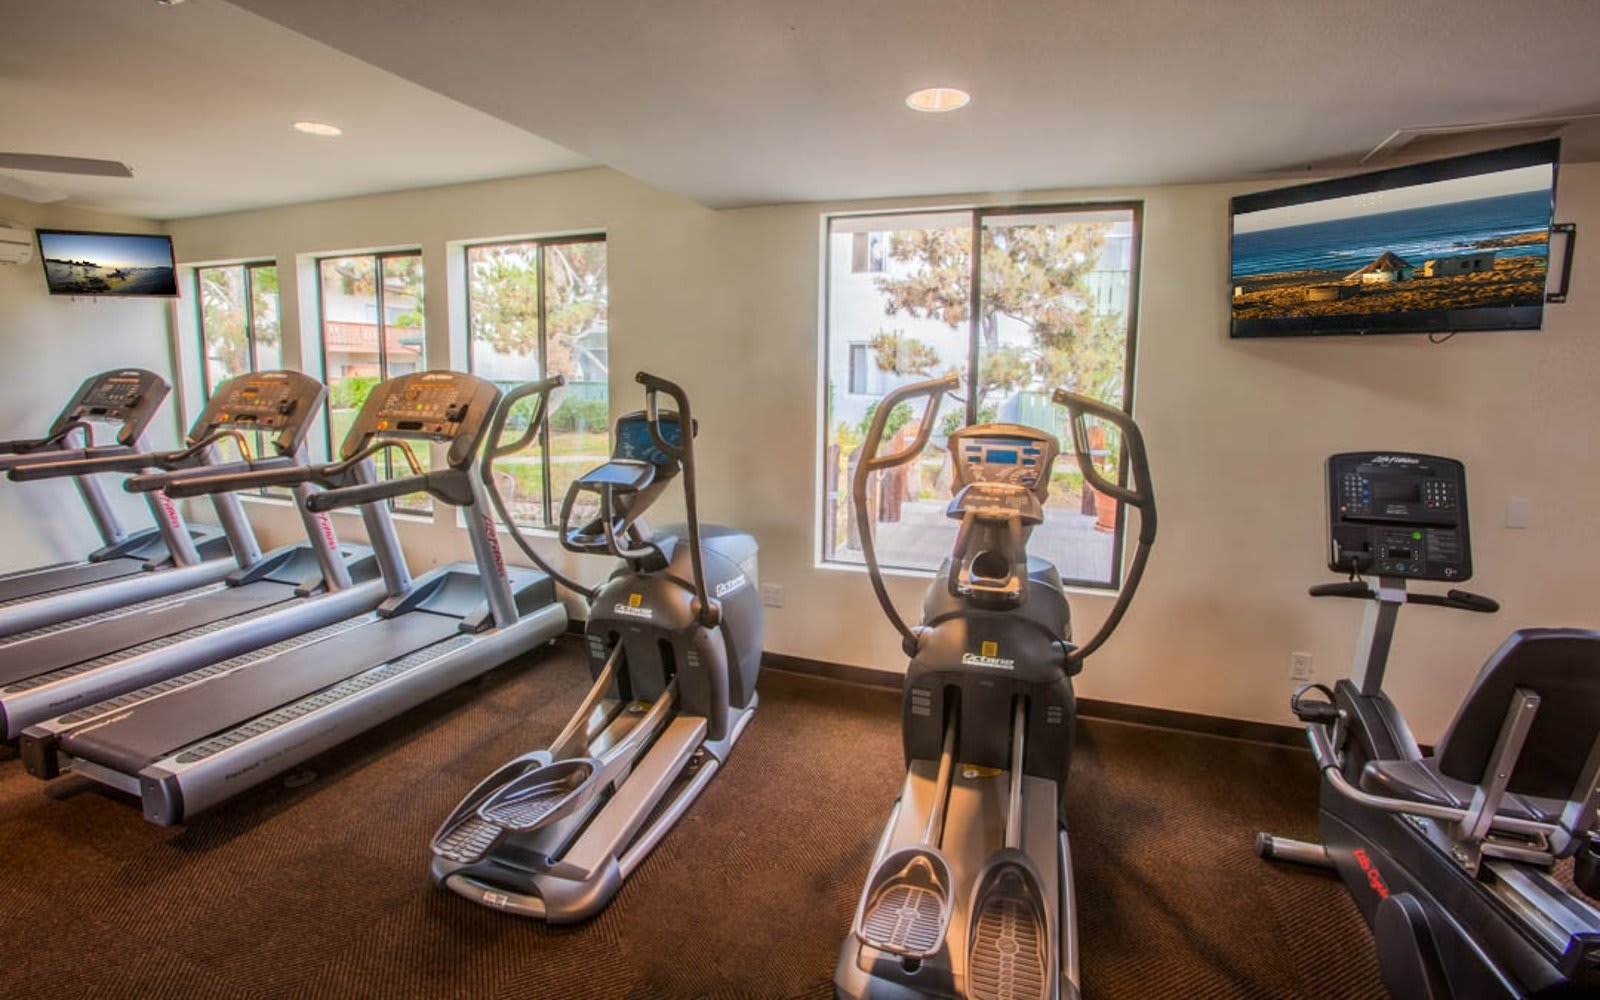 Fitness center at Pacific Oaks Apartments